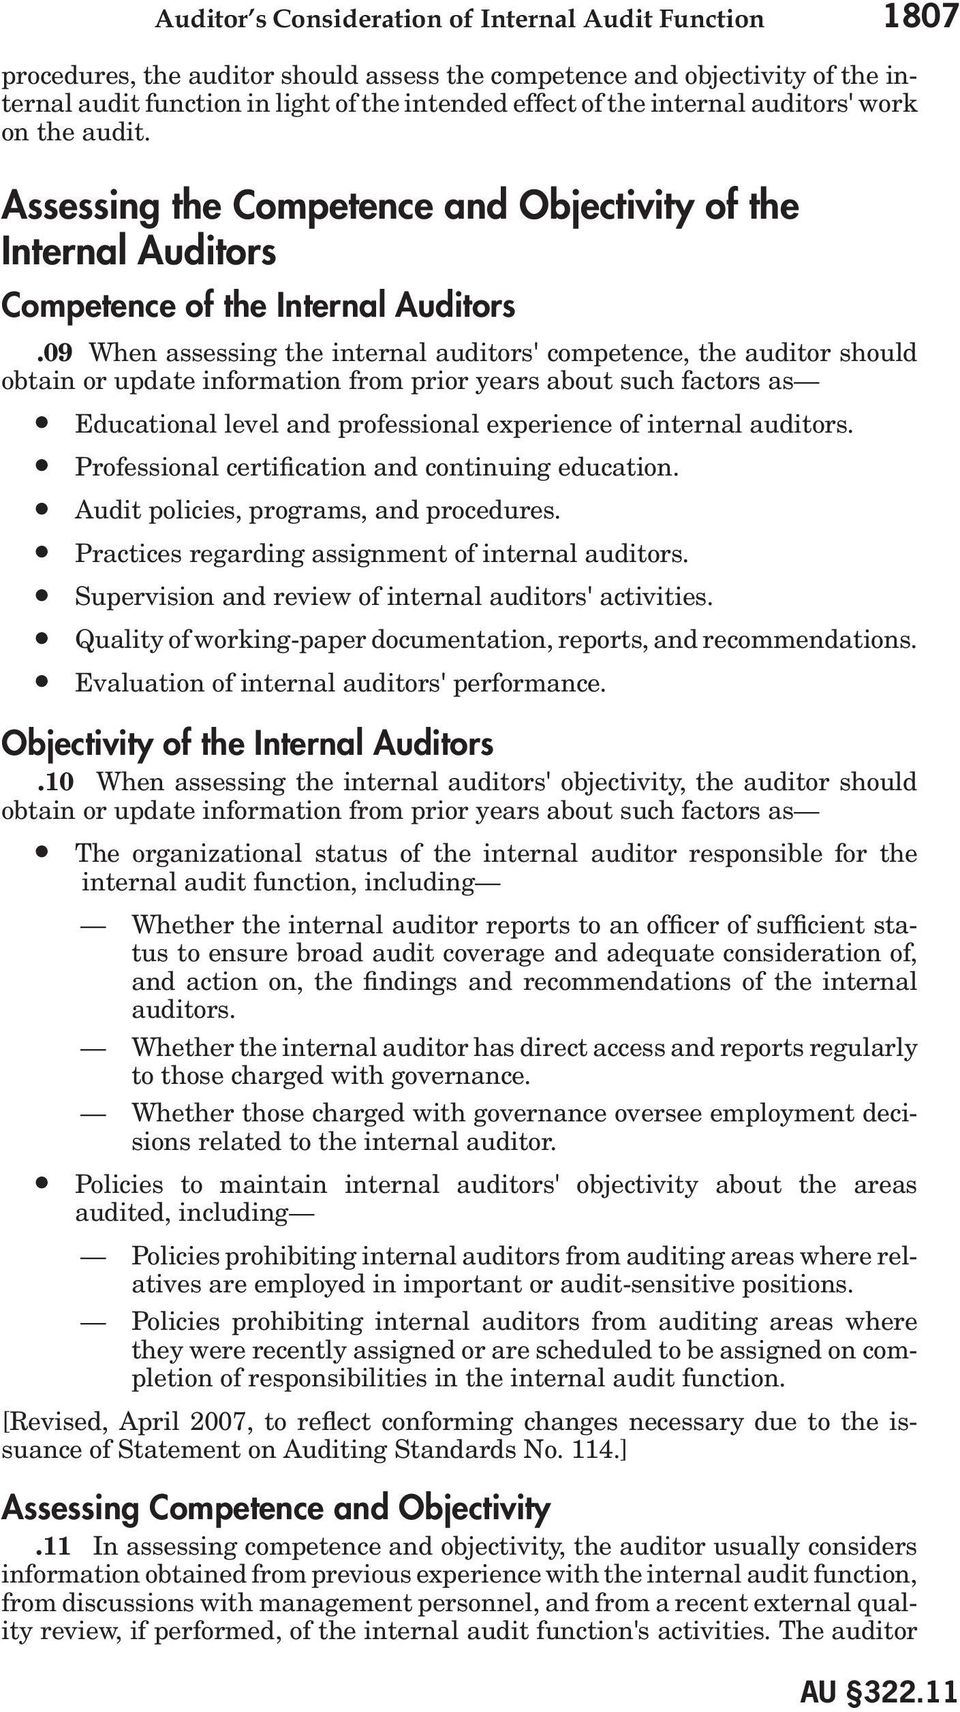 09 When assessing the internal auditors' competence, the auditor should obtain or update information from prior years about such factors as Educational level and professional experience of internal